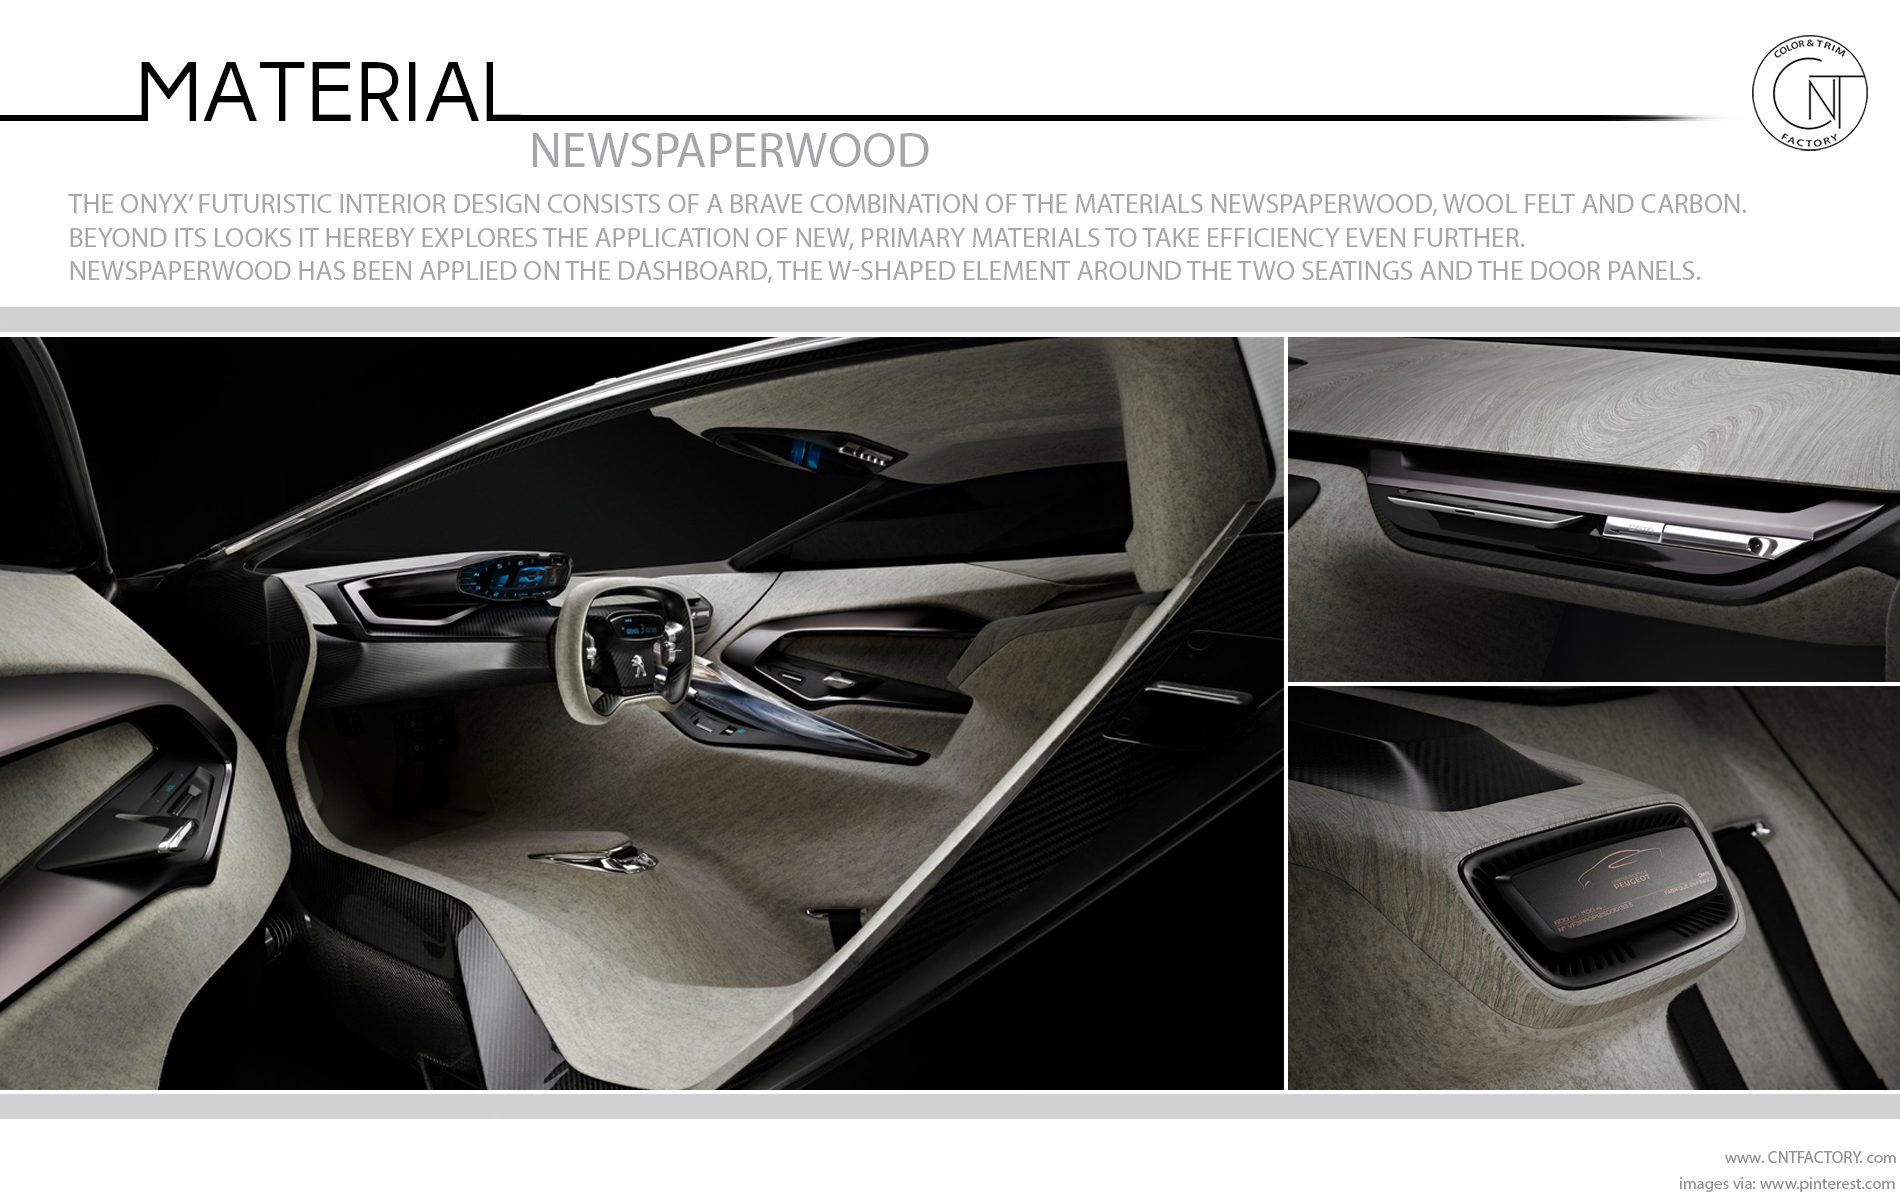 newspaperwood Peugeot Onyx Concept